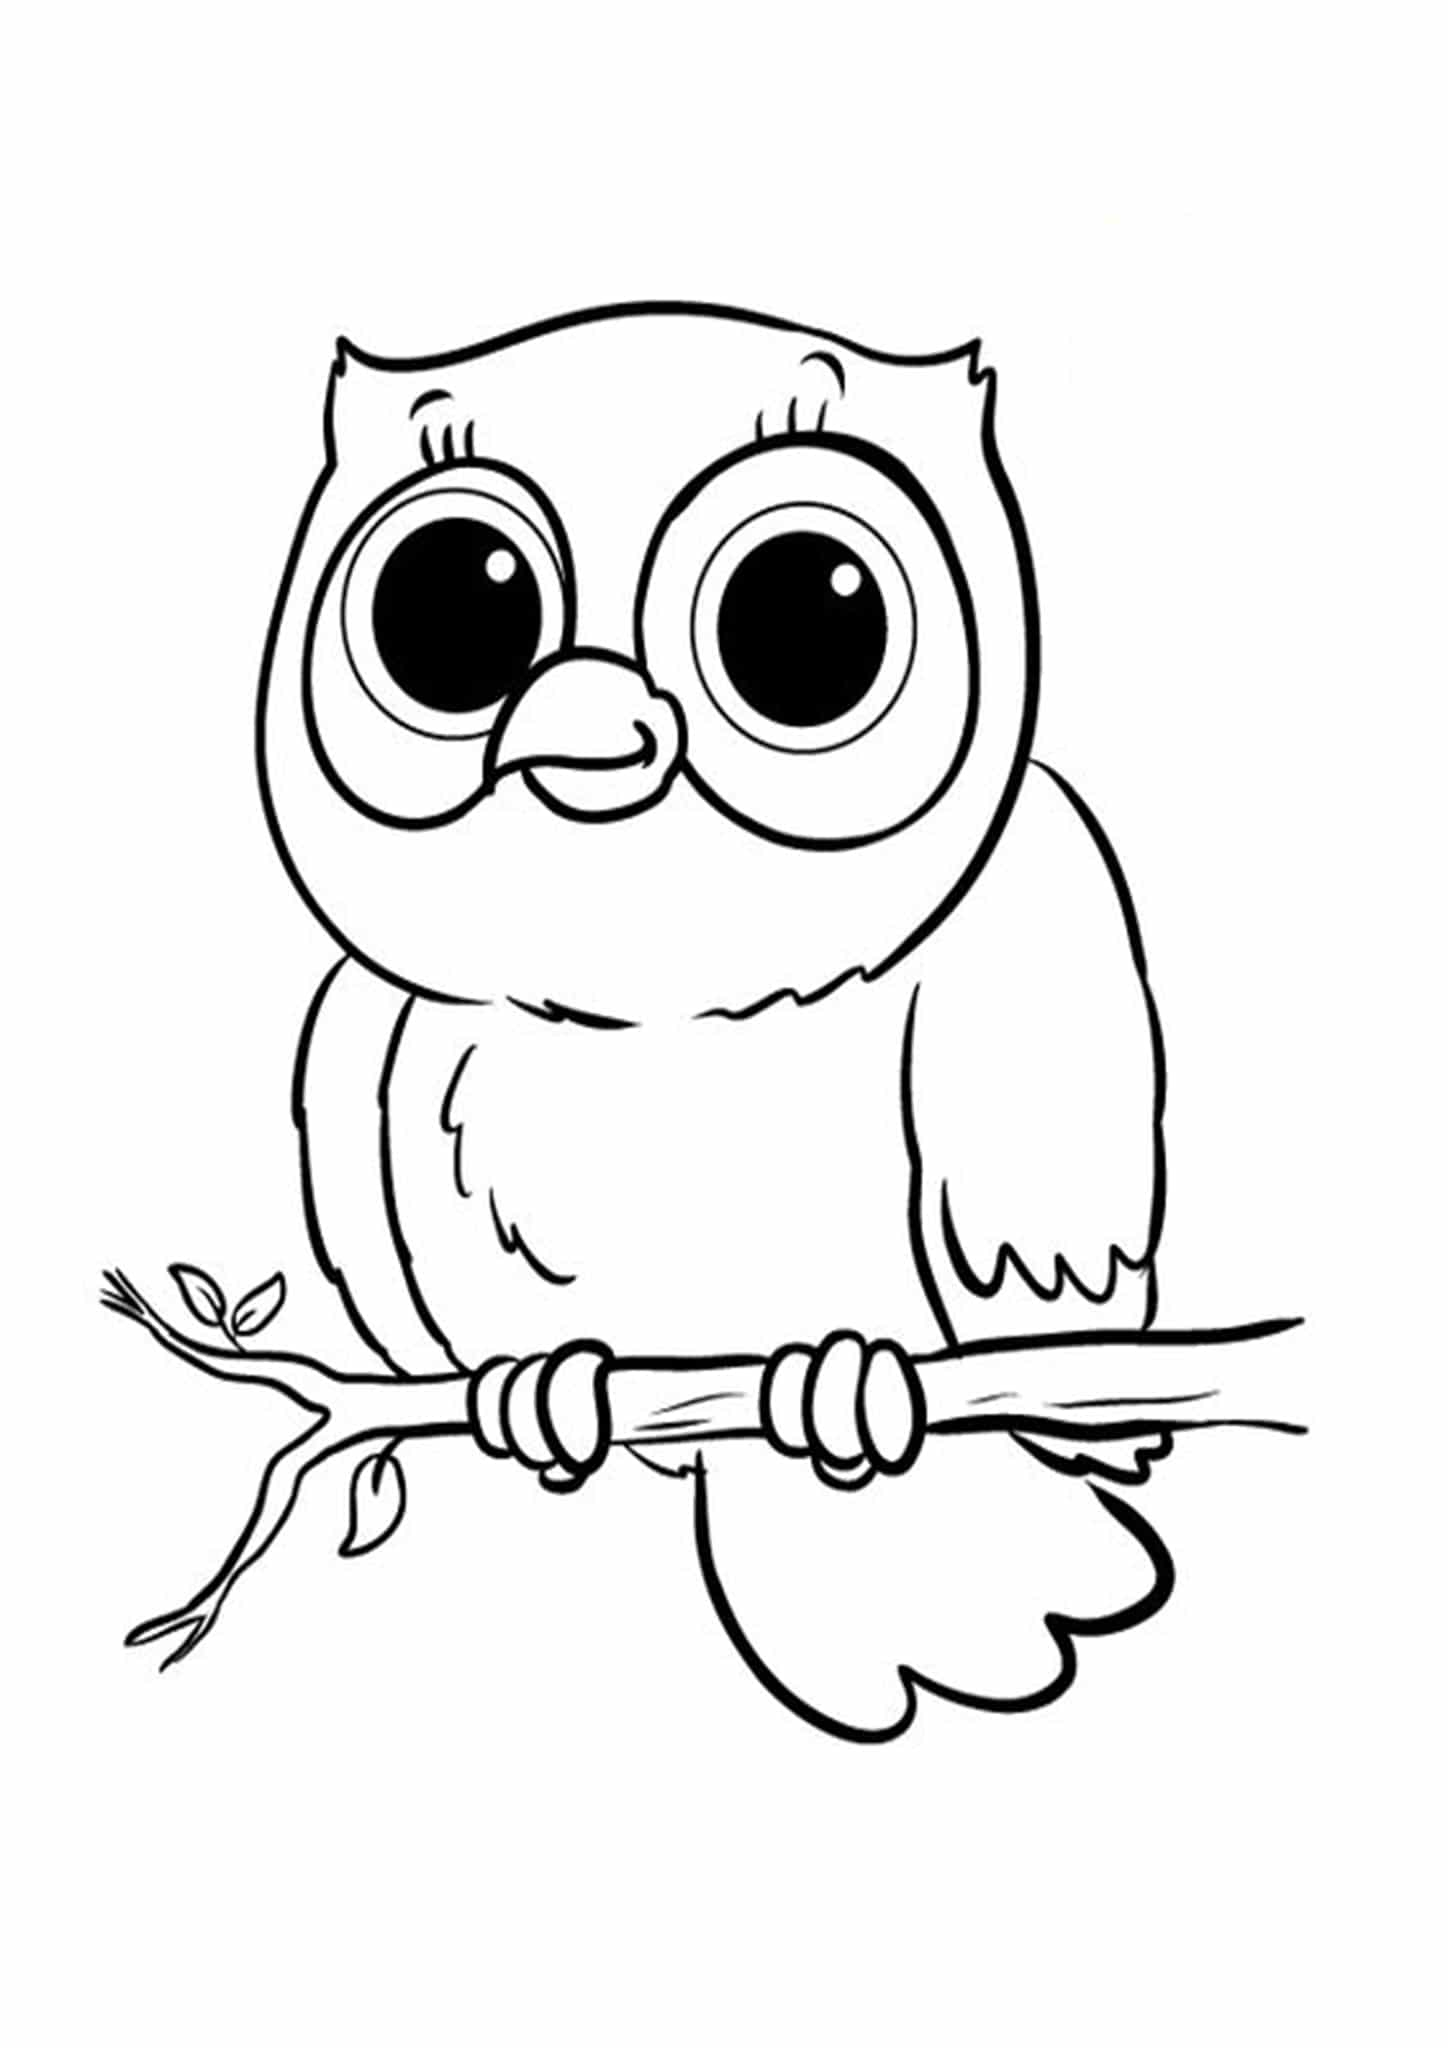 a coloring picture free easy to print owl coloring pages tulamama coloring picture a